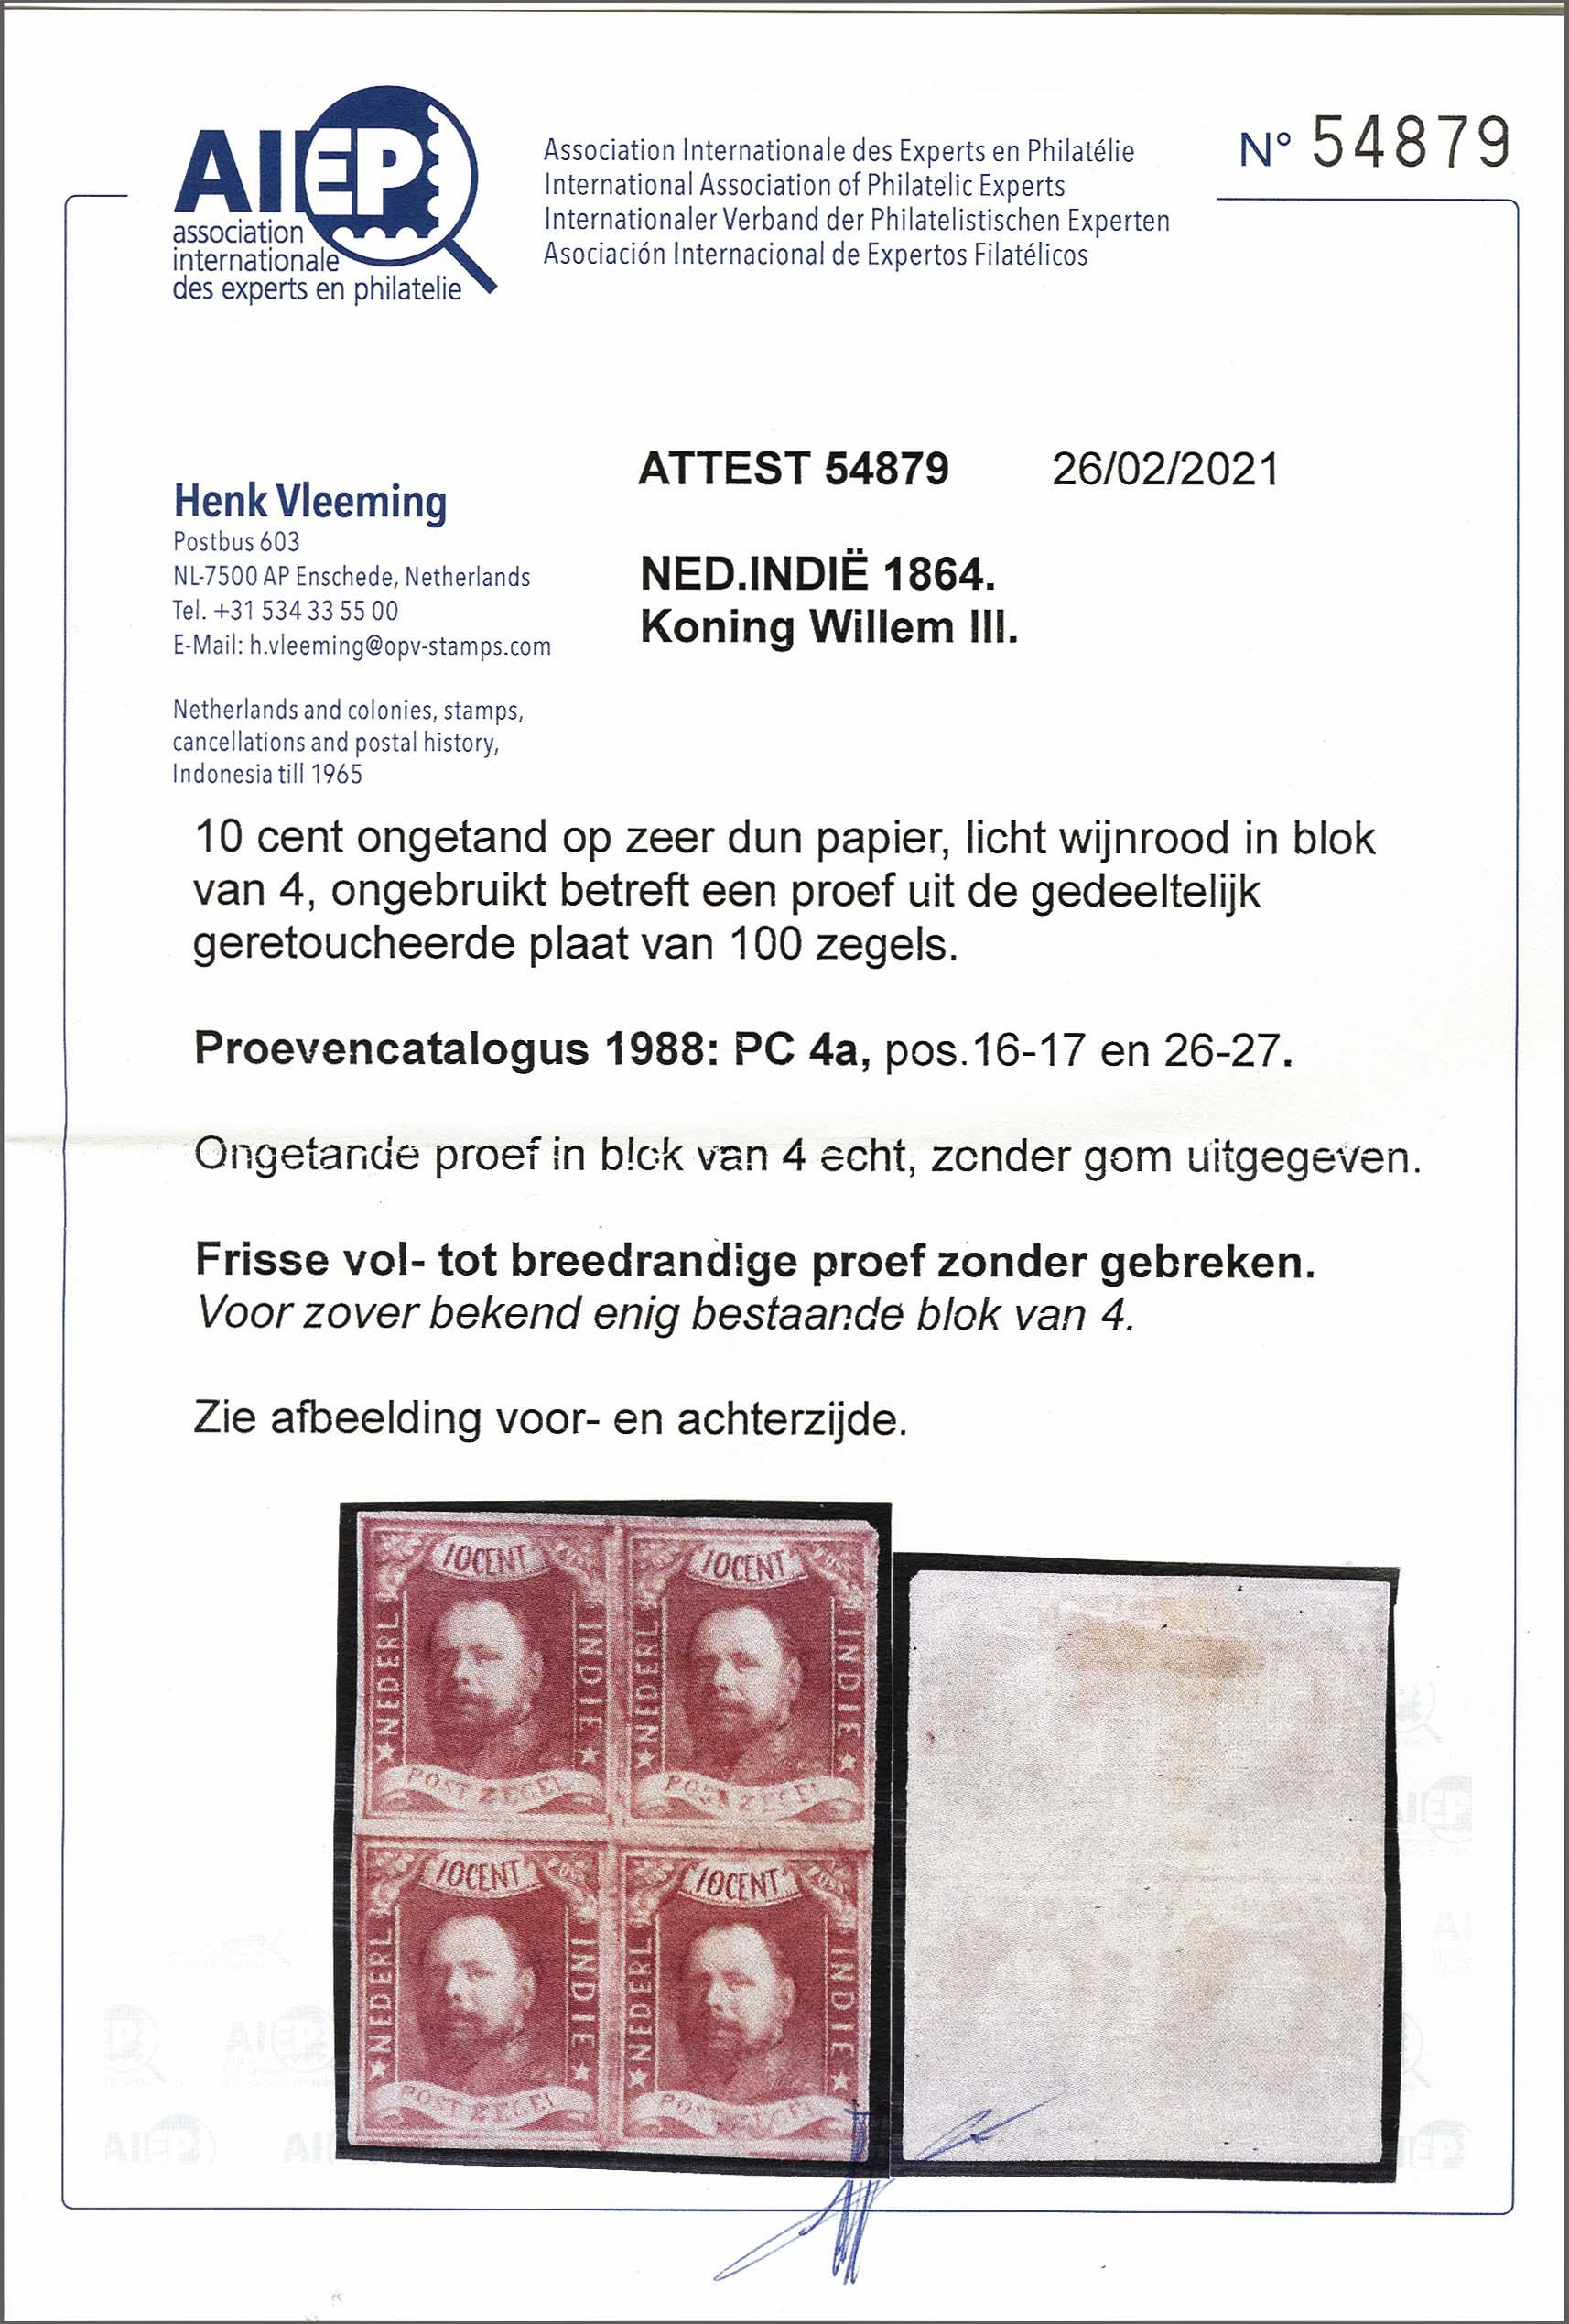 Lot 3301 - Netherlands and former colonies Netherlands Indies -  Corinphila Veilingen Auction 250-253 - Day 4 - Proofs of Netherlands former colonies